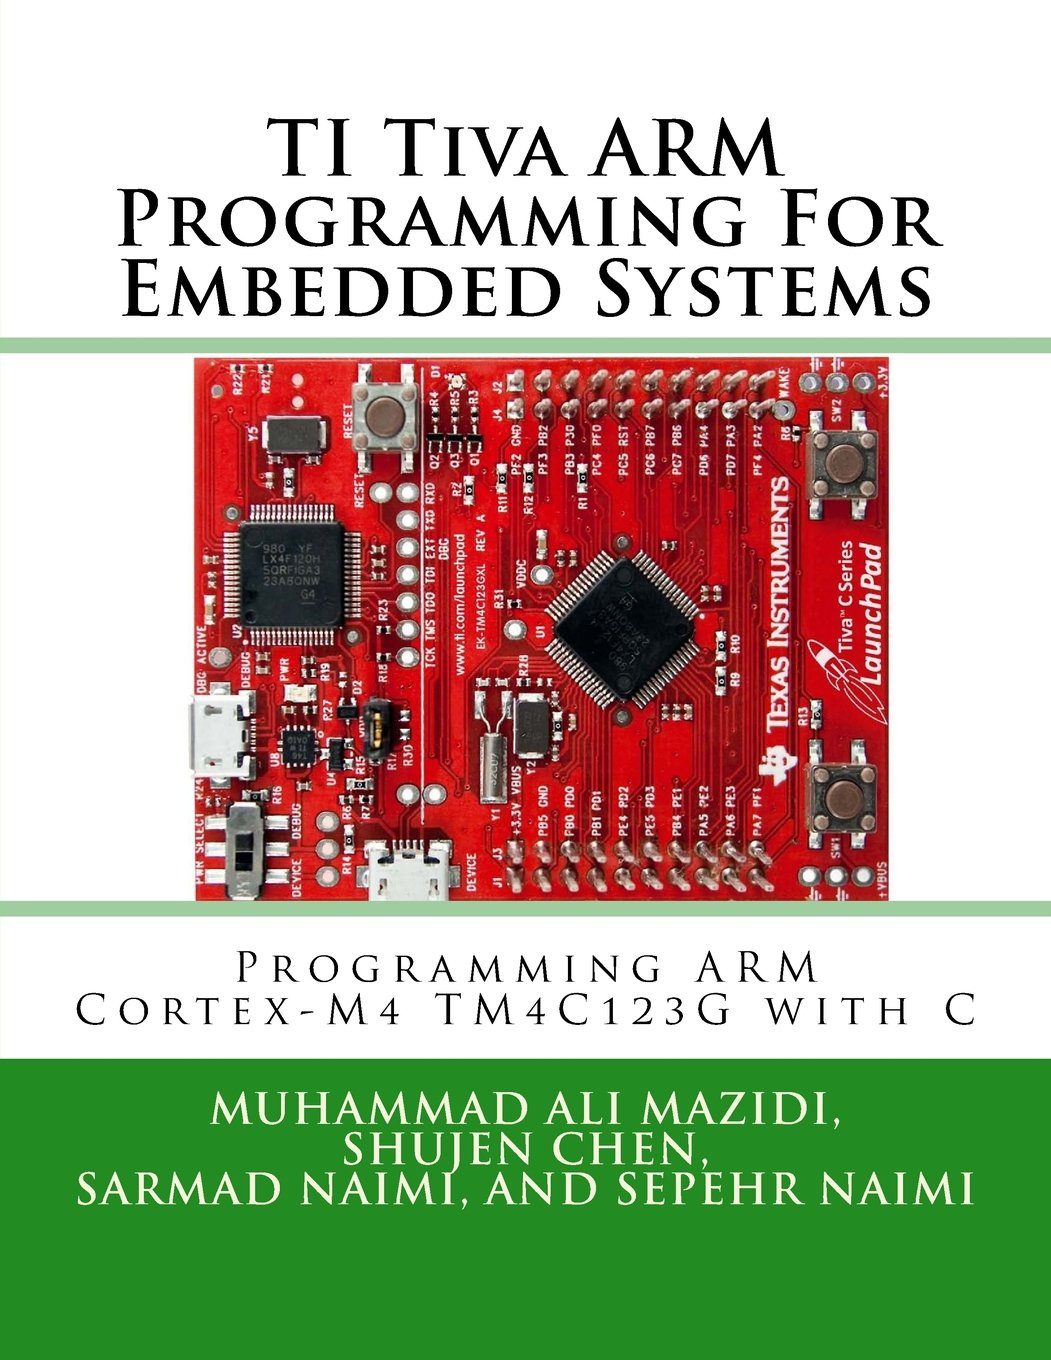 Embedded Systems Real Time Operating For Arm Cortex M Introduction To The World Of Microcontrollers Pic Ti Tiva Programming M4 Tm4c123g With C